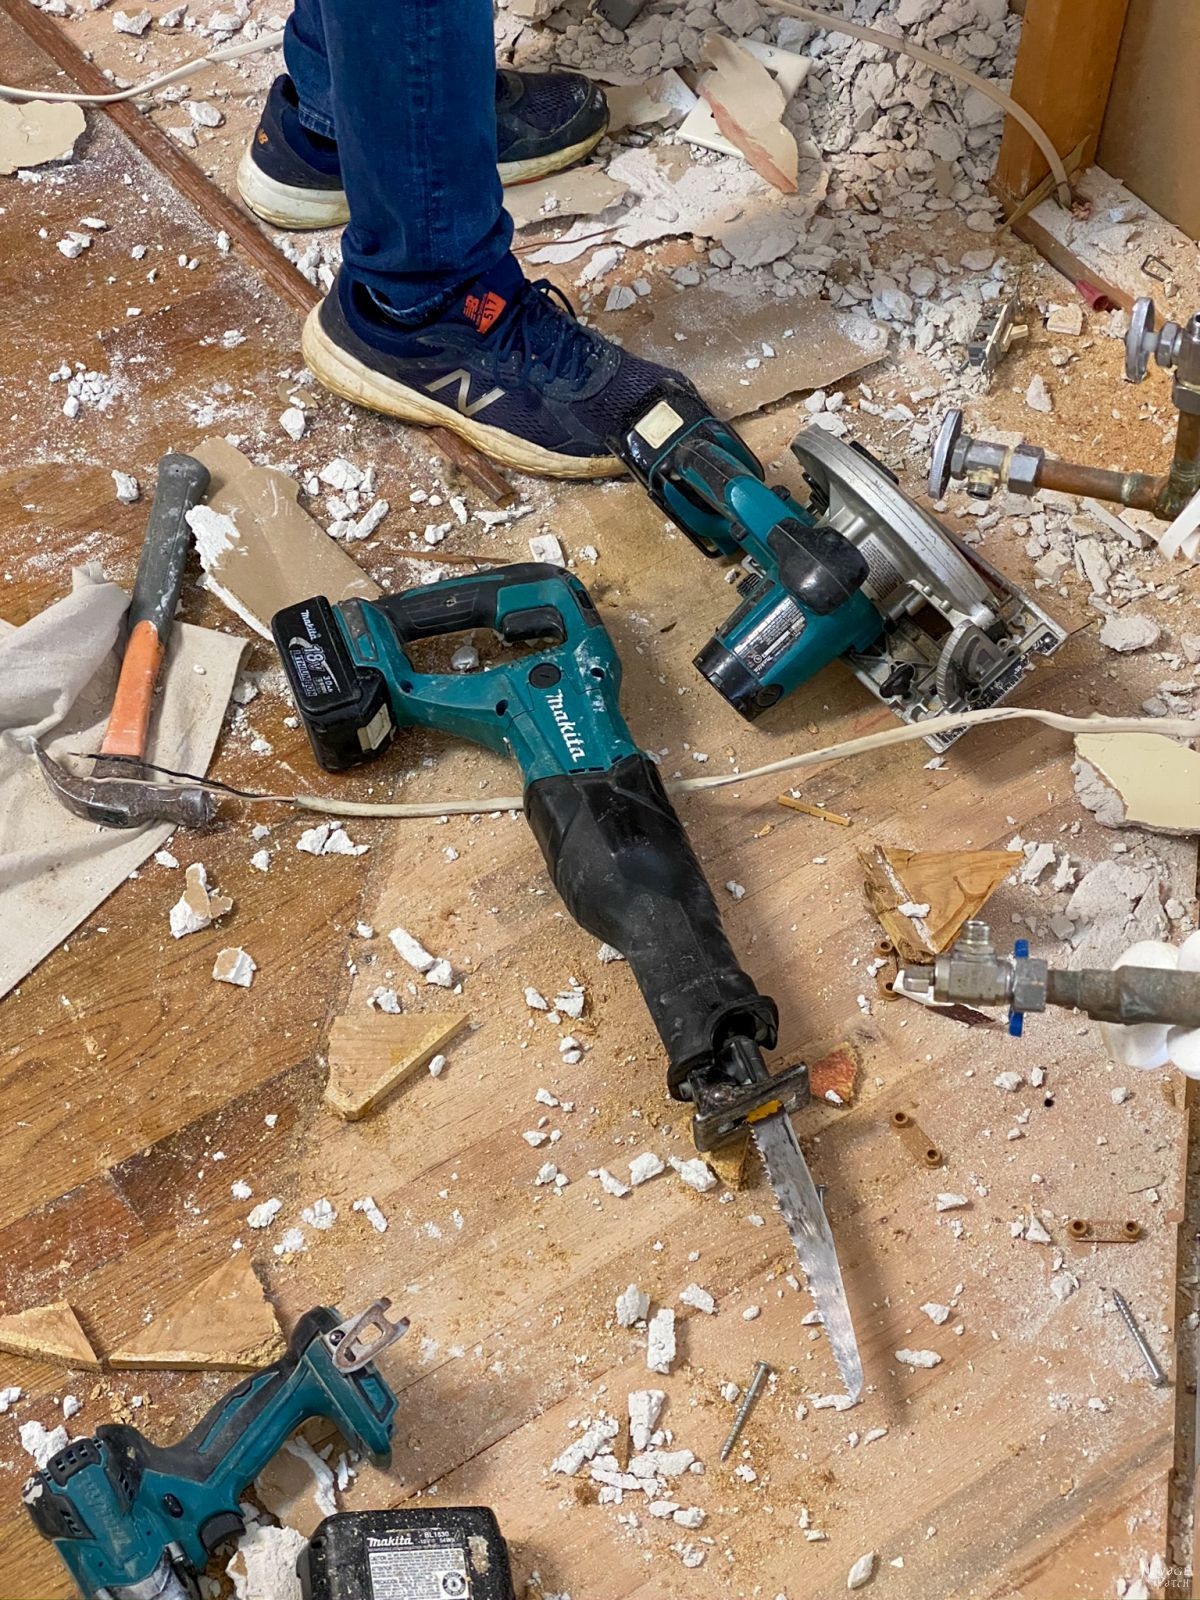 tools are construction waste on the floor